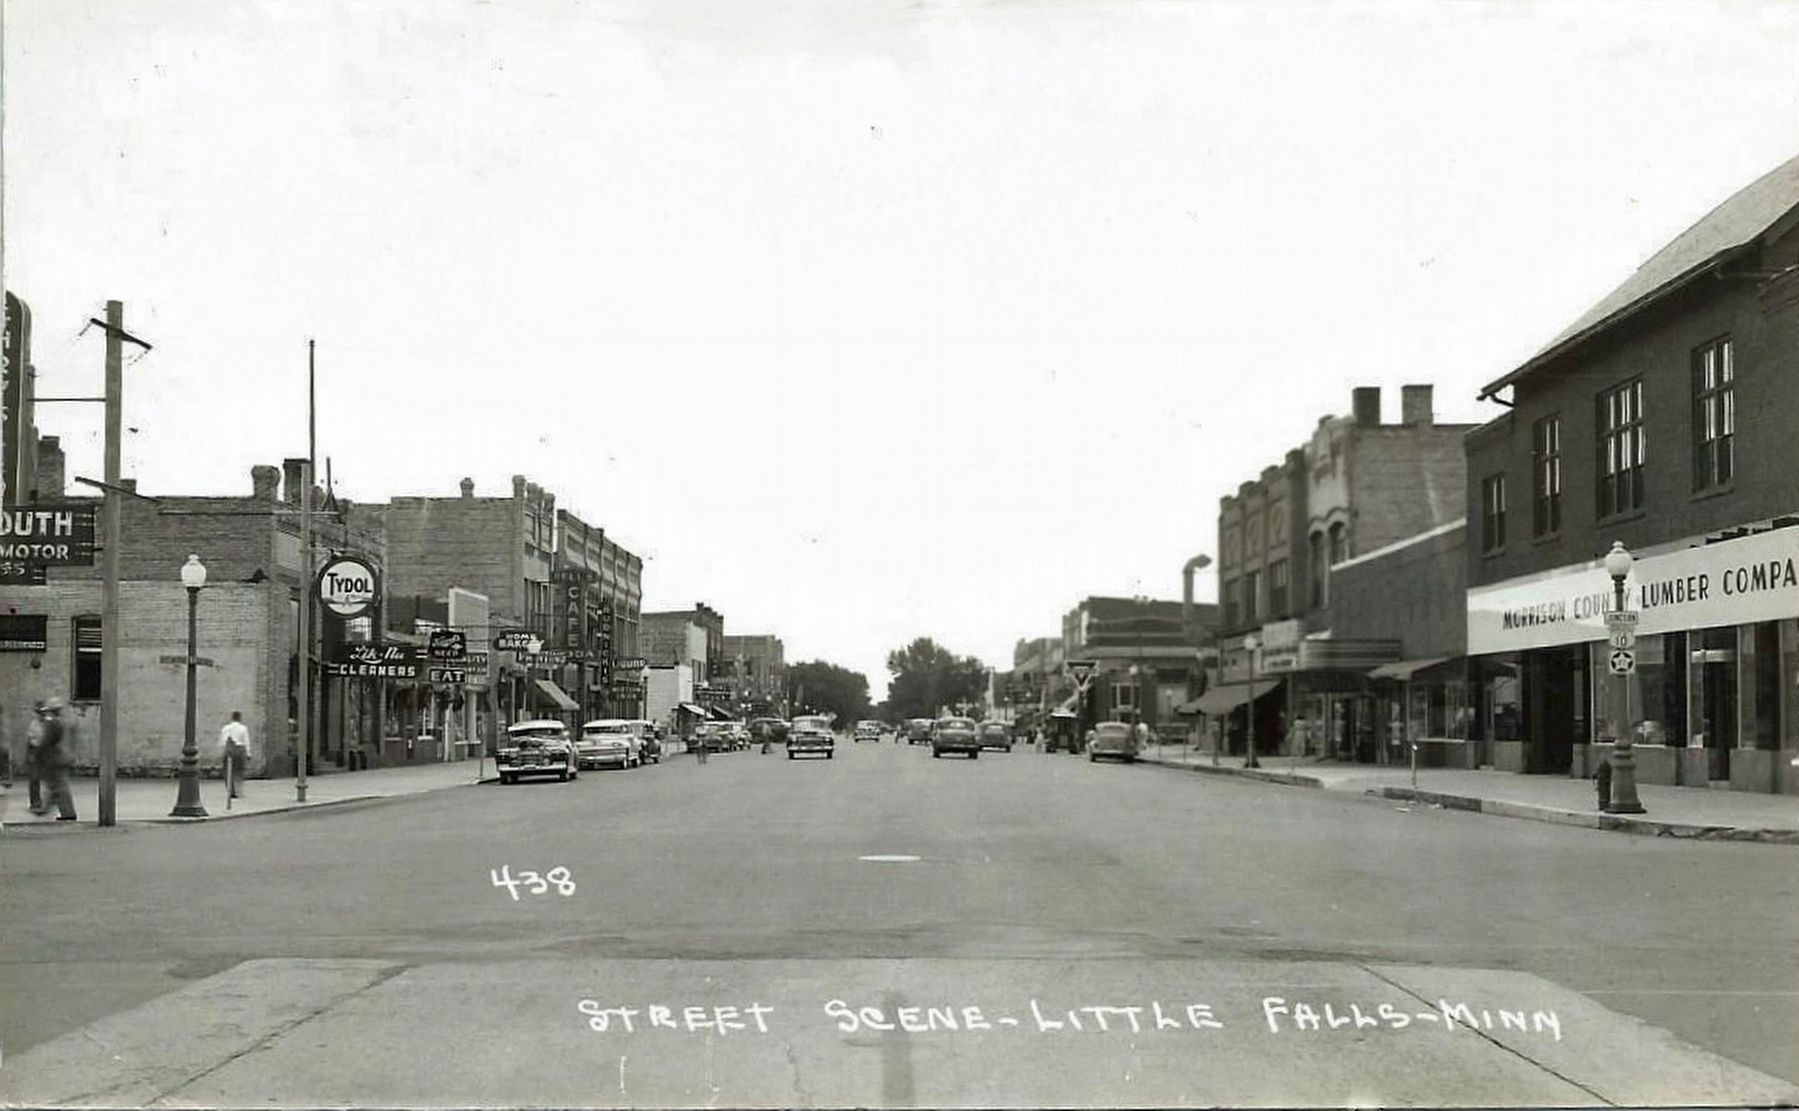 <i>Street Scene - Little Falls - Minn.</i> - Looking north, W. Tonn Block on the left image. Click for full size.